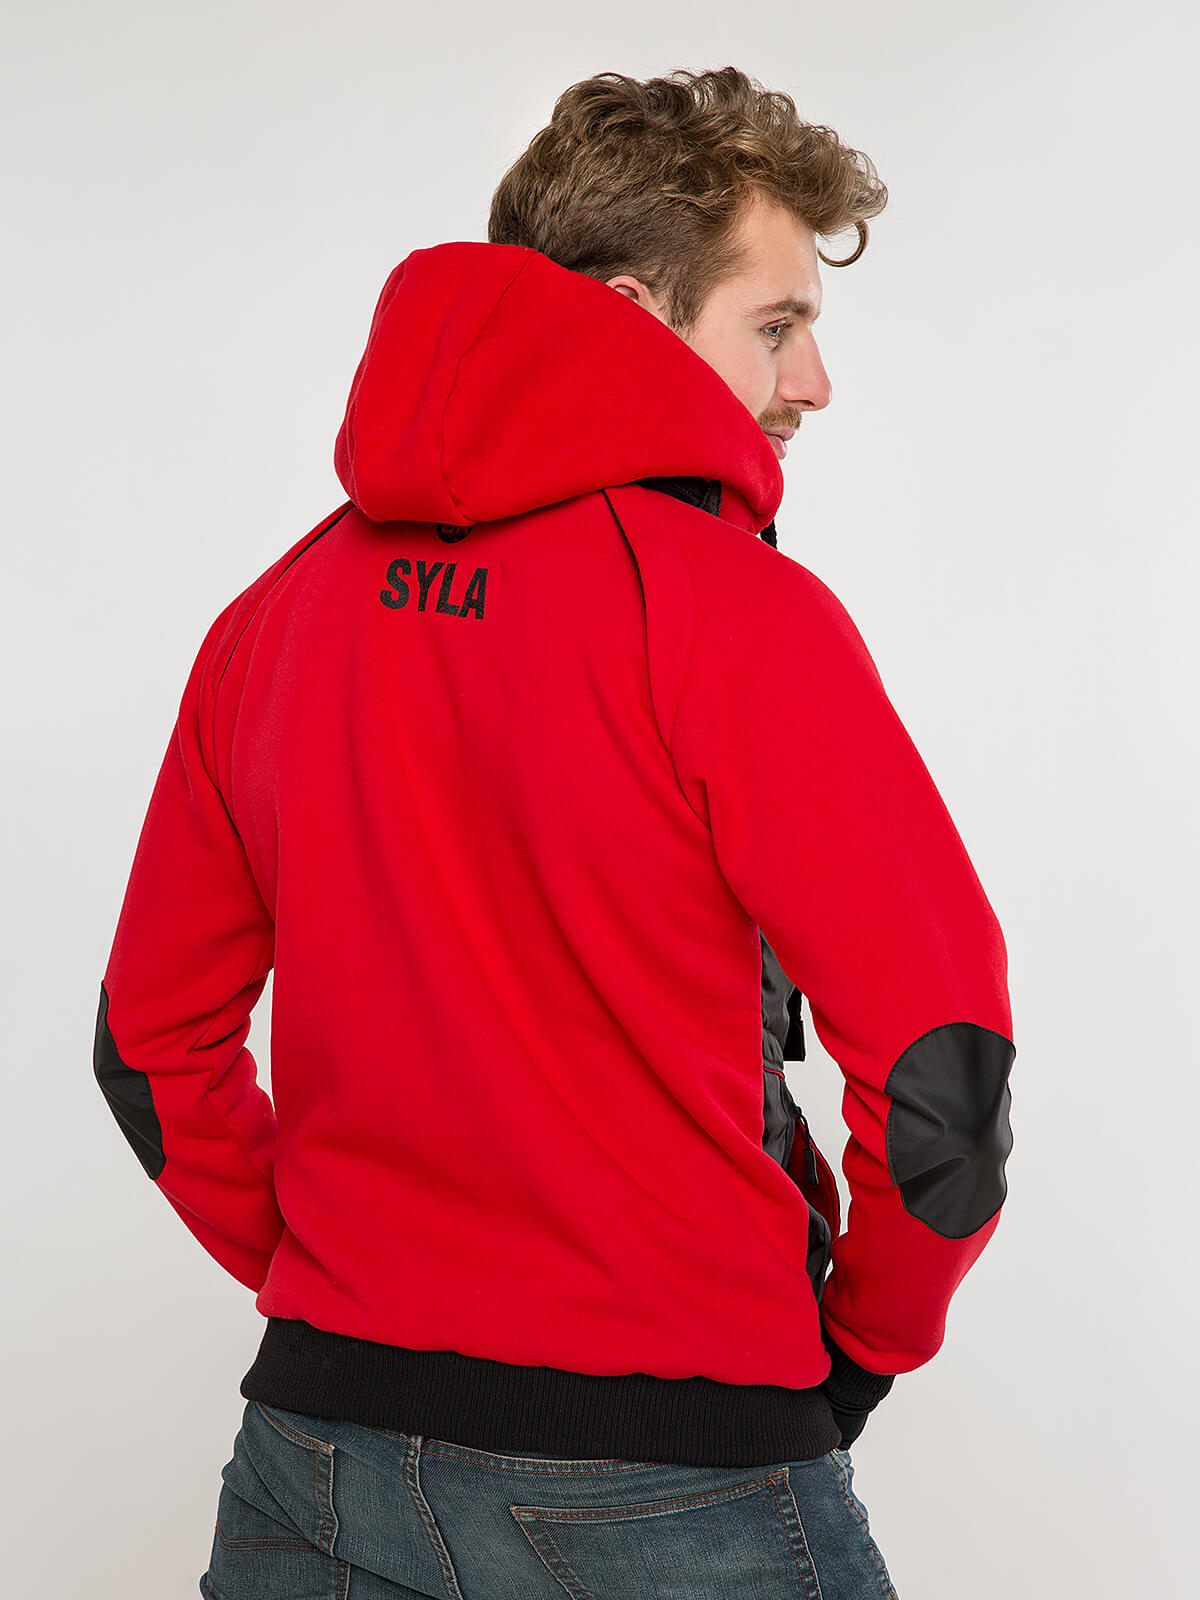 Men's Hoodie Syla. Color red.  Material of the hoodie – three-cord thread fabric: 77% cotton, 23% polyester.